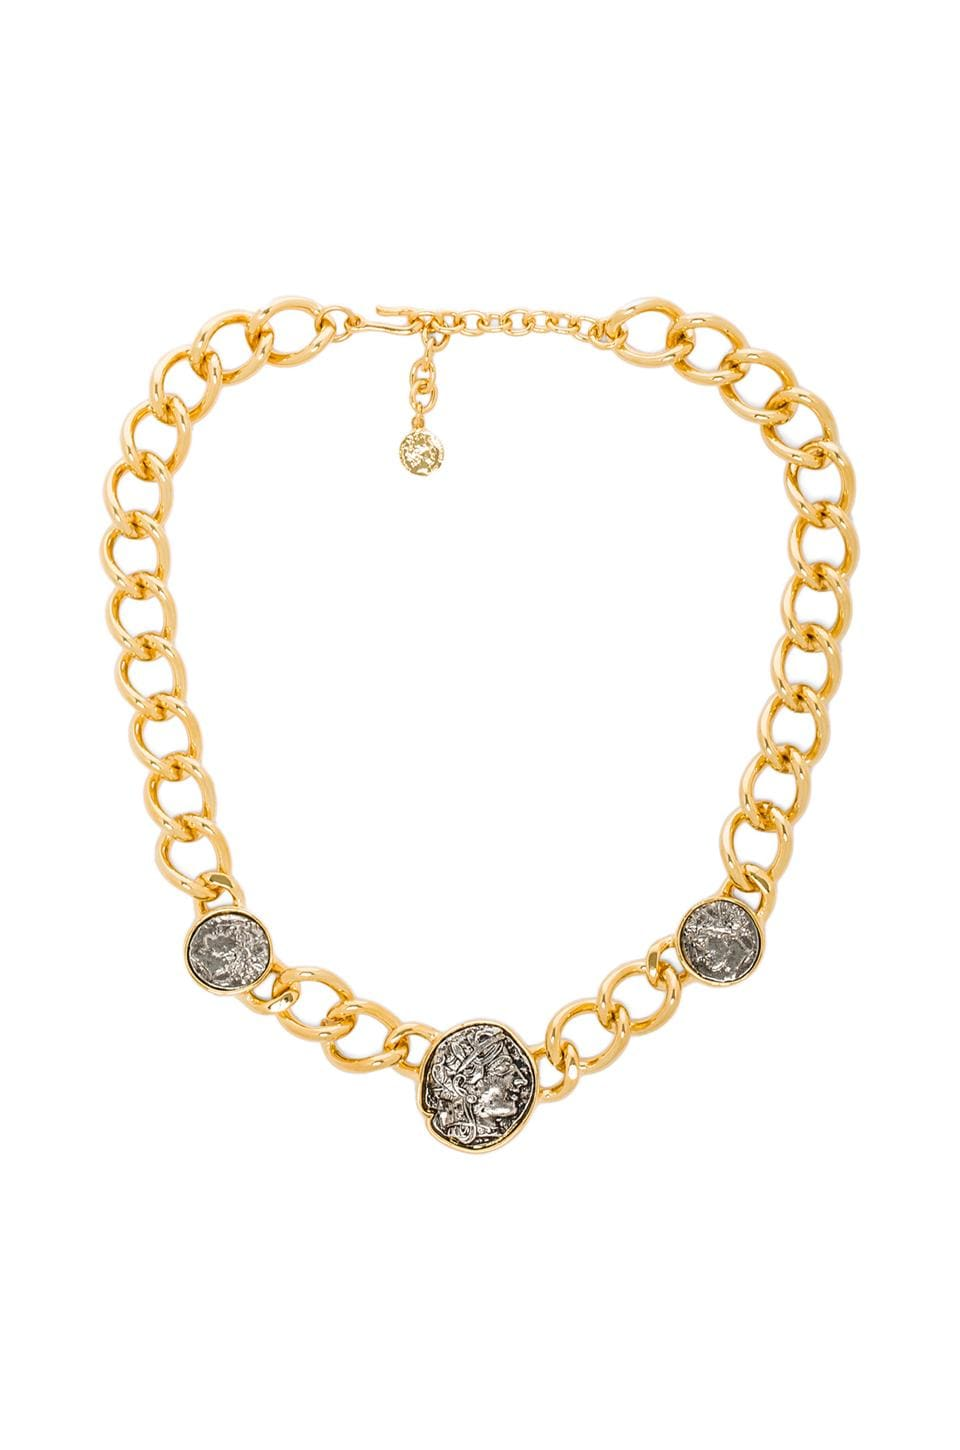 Kenneth Jay Lane 3 Coin Chain Necklace in Polished Gold